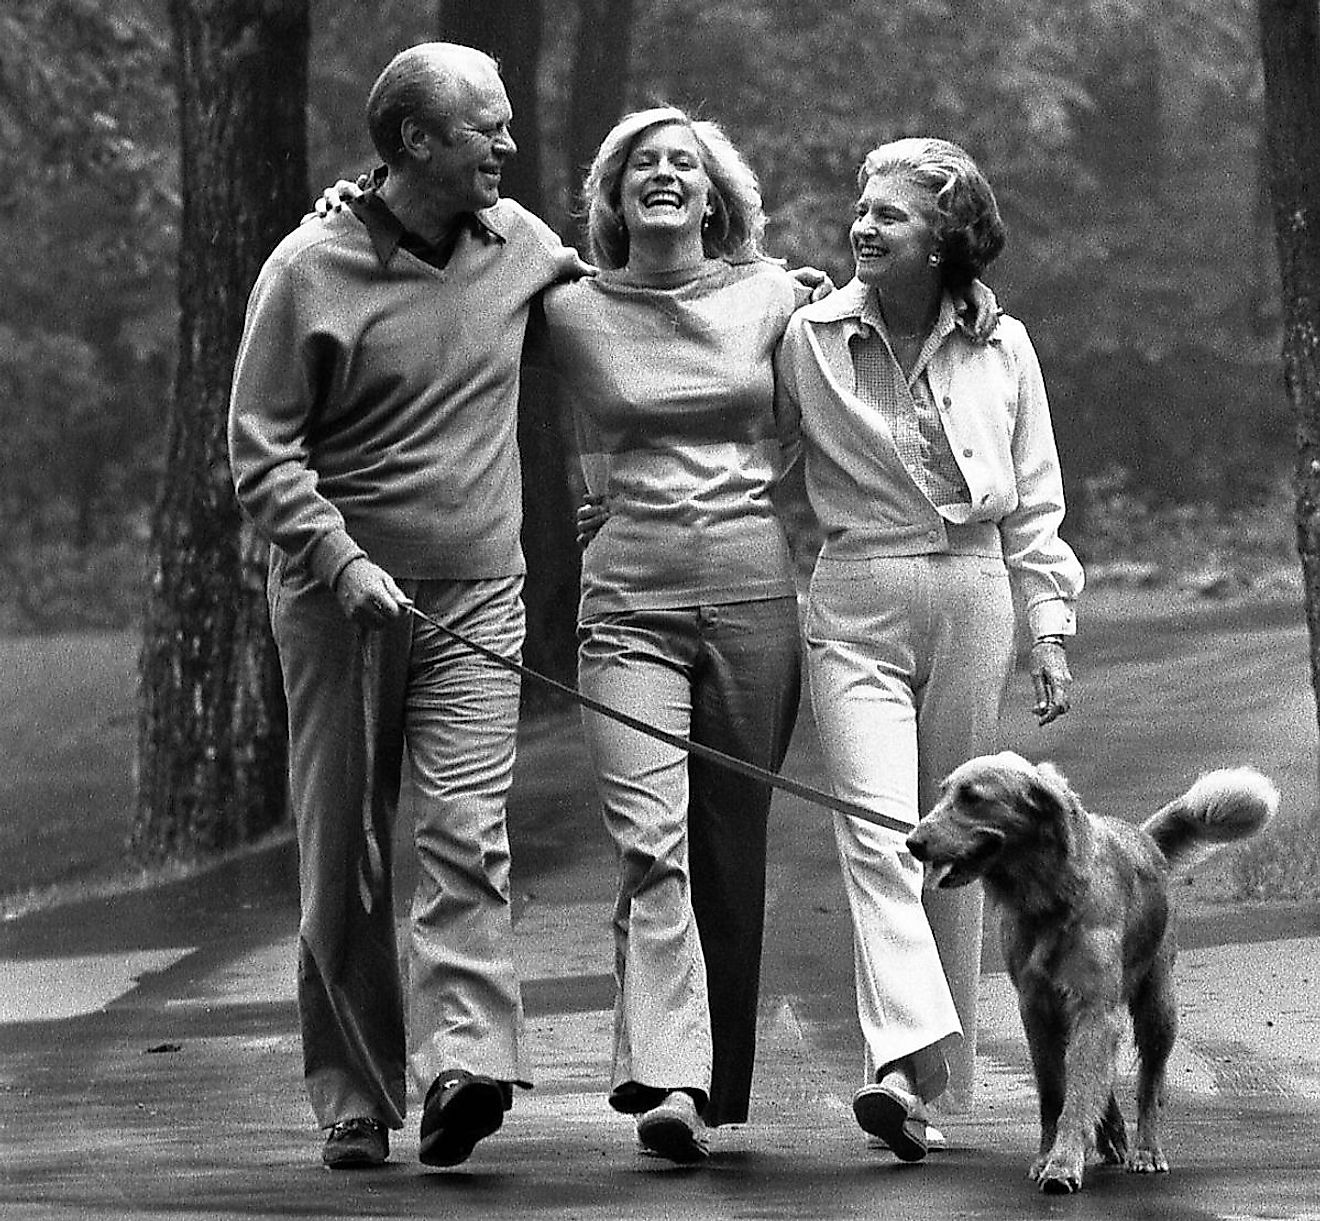 Photograph of President Gerald Ford and First Lady Betty Ford with Susan and Liberty at Camp David. Image credit: David Hume Kennerly/Public domain